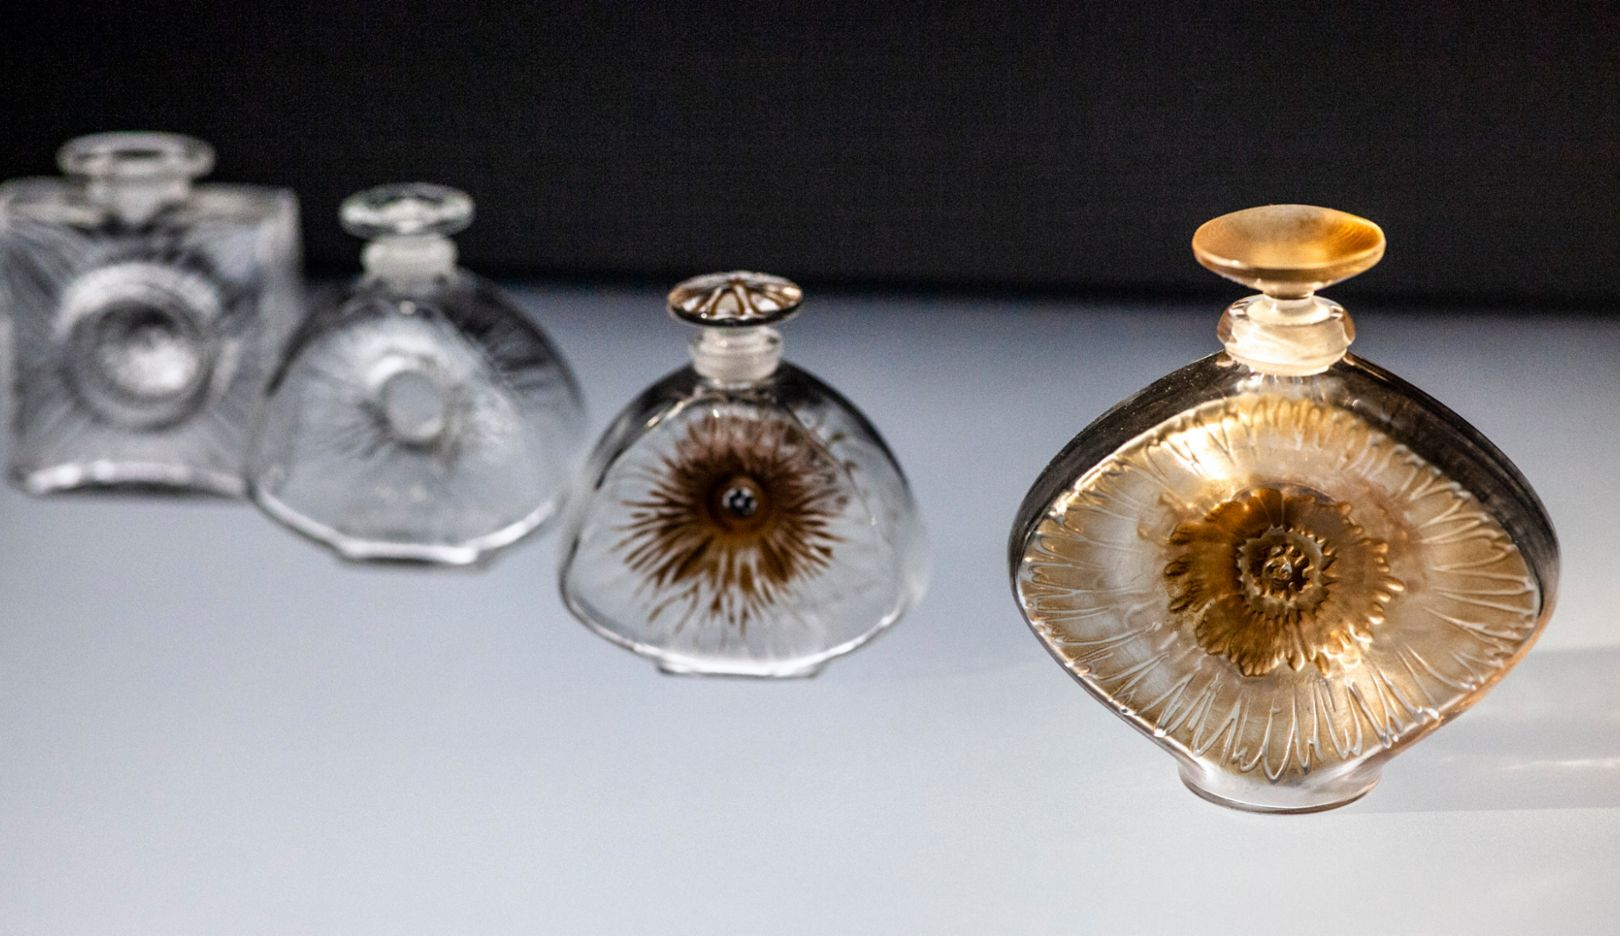 René Lalique revolutionised flacon production, and his innovations were copied accordingly, which is why he tried to protect himself with his first patents in 1911 and 1912. This collection from 1911 is one of them. From left to right, the classic box shape of Dahlia changes via Fleur and Althéa to a stylised eye: the blossom becomes a shimmering iris.